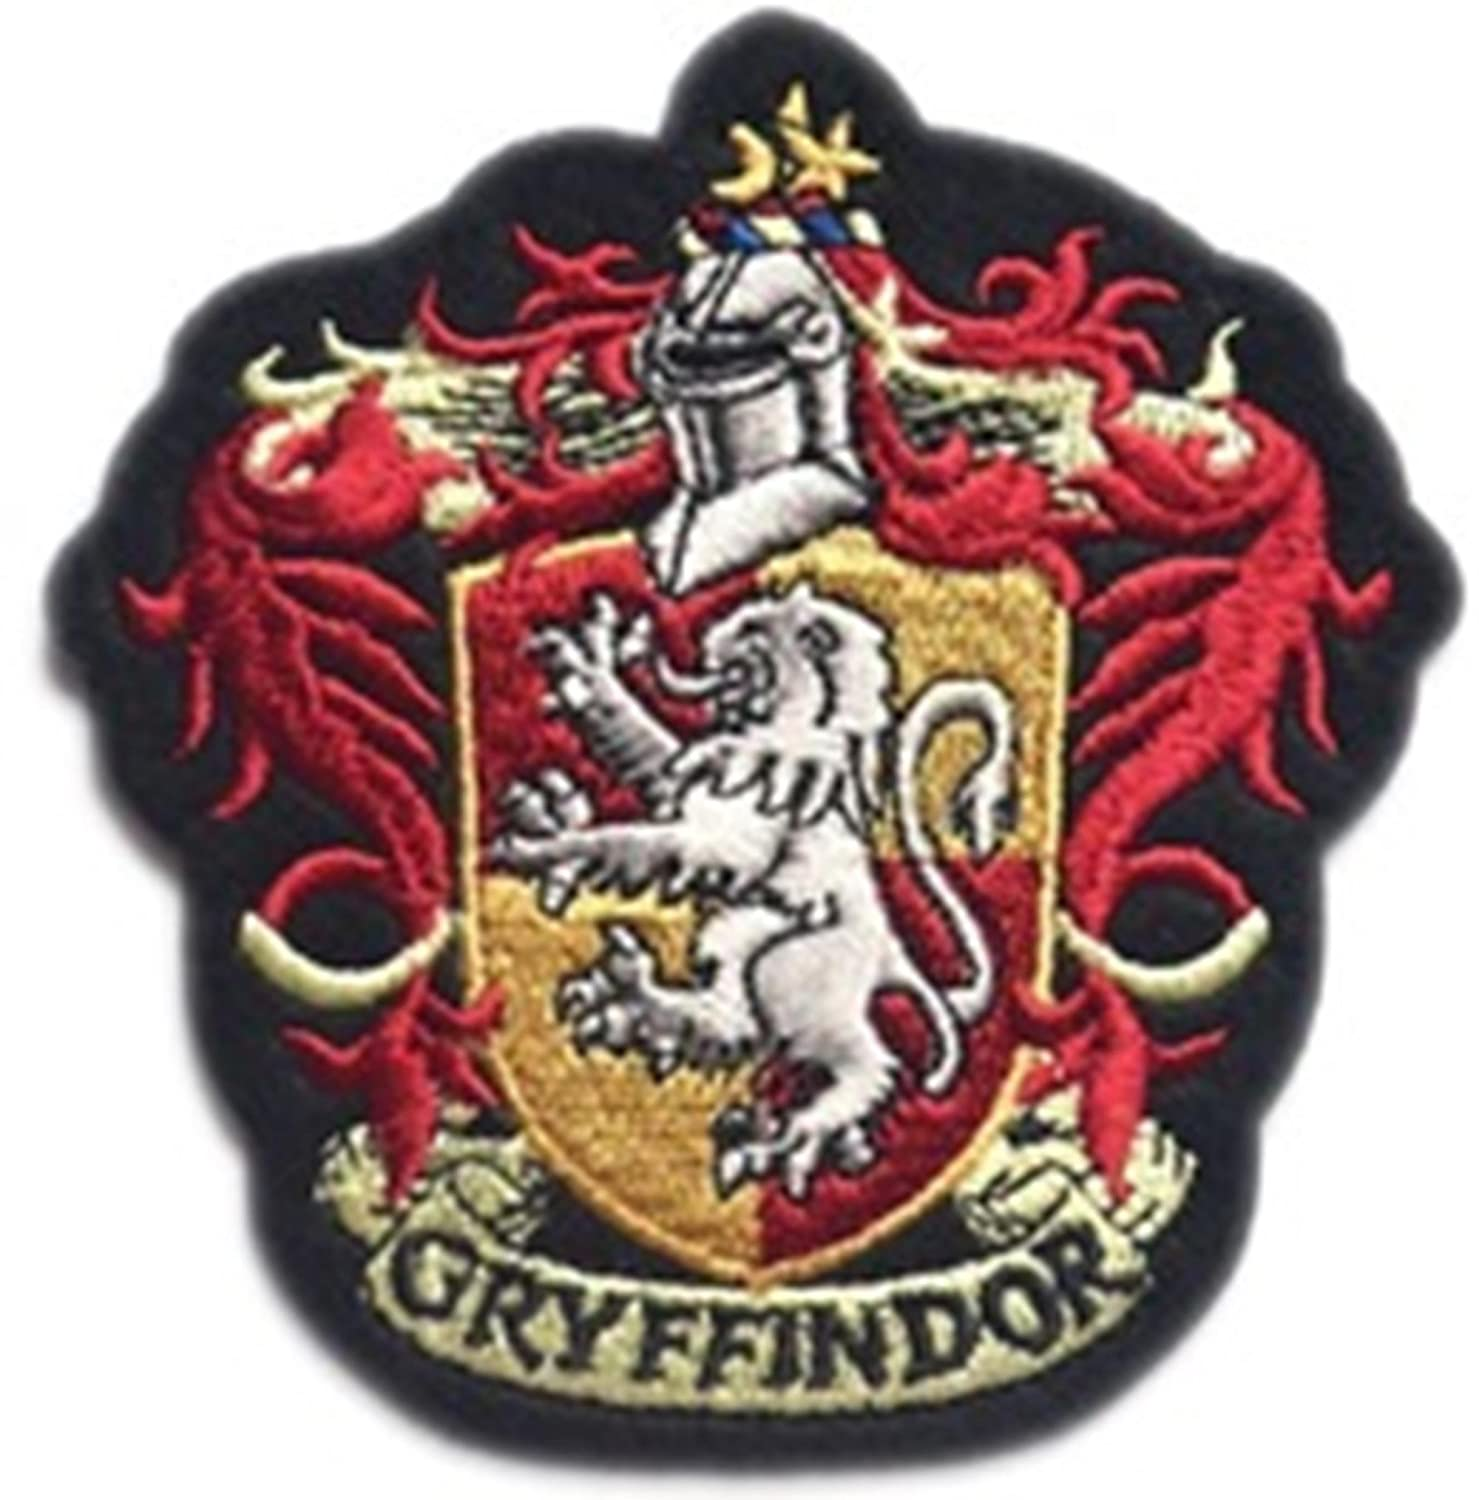 J& C Family Owned Harry Potter Gryffindor House Crest Hogwart 4 Embroidered Sew/Iron-on Patch/Applique